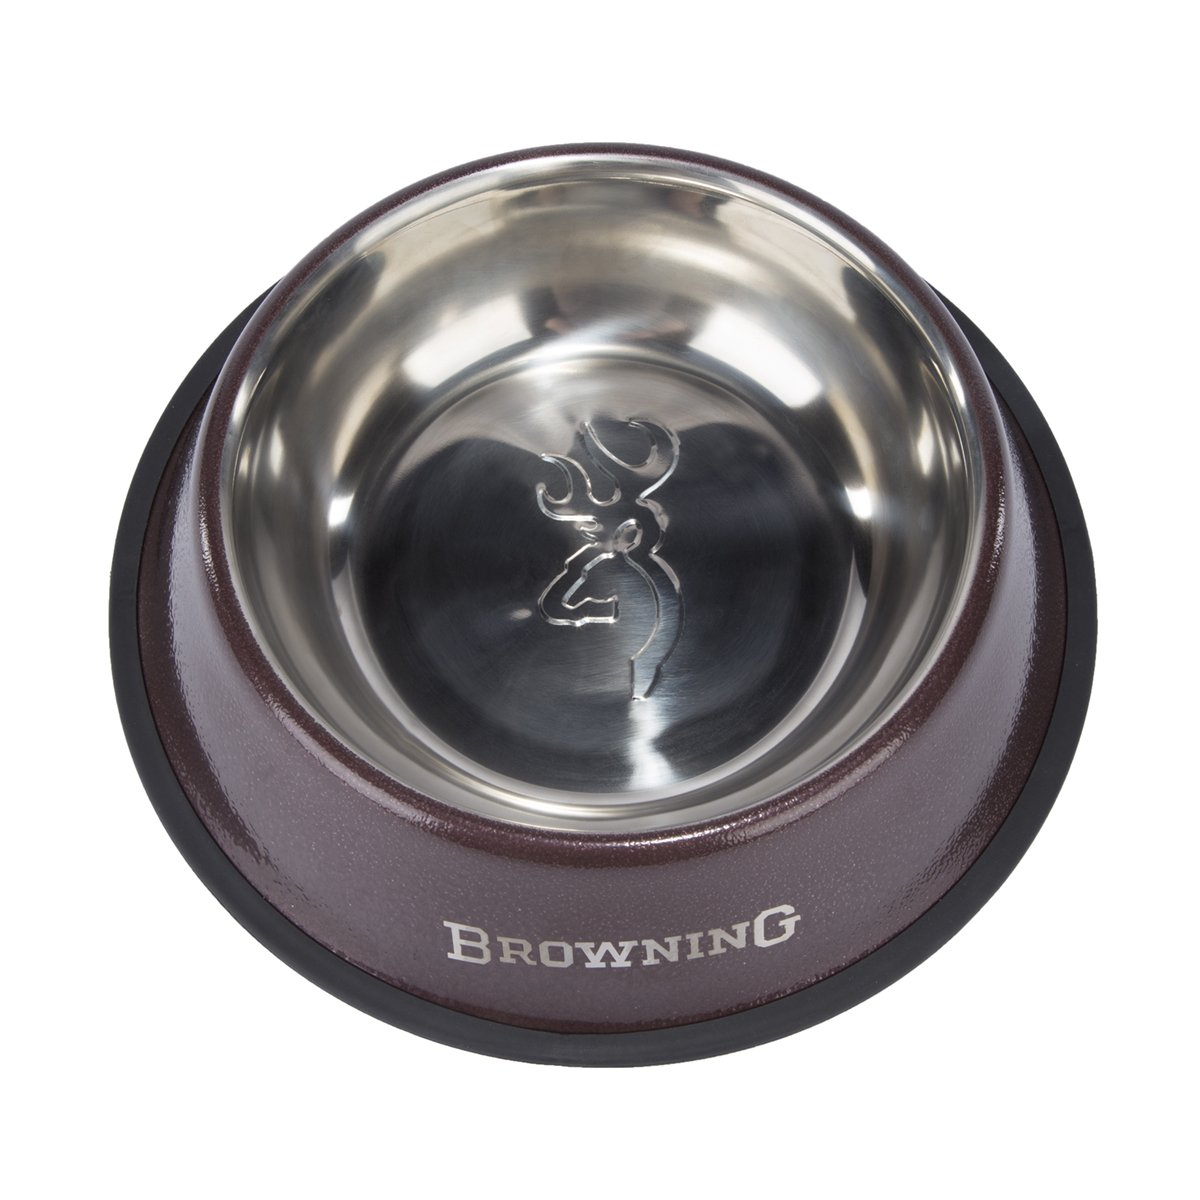 Browning Stainless Steel Pet Dish Hunting Dog Food Bowl, Stainless Steel, 9'', Bronze, Large by Browning